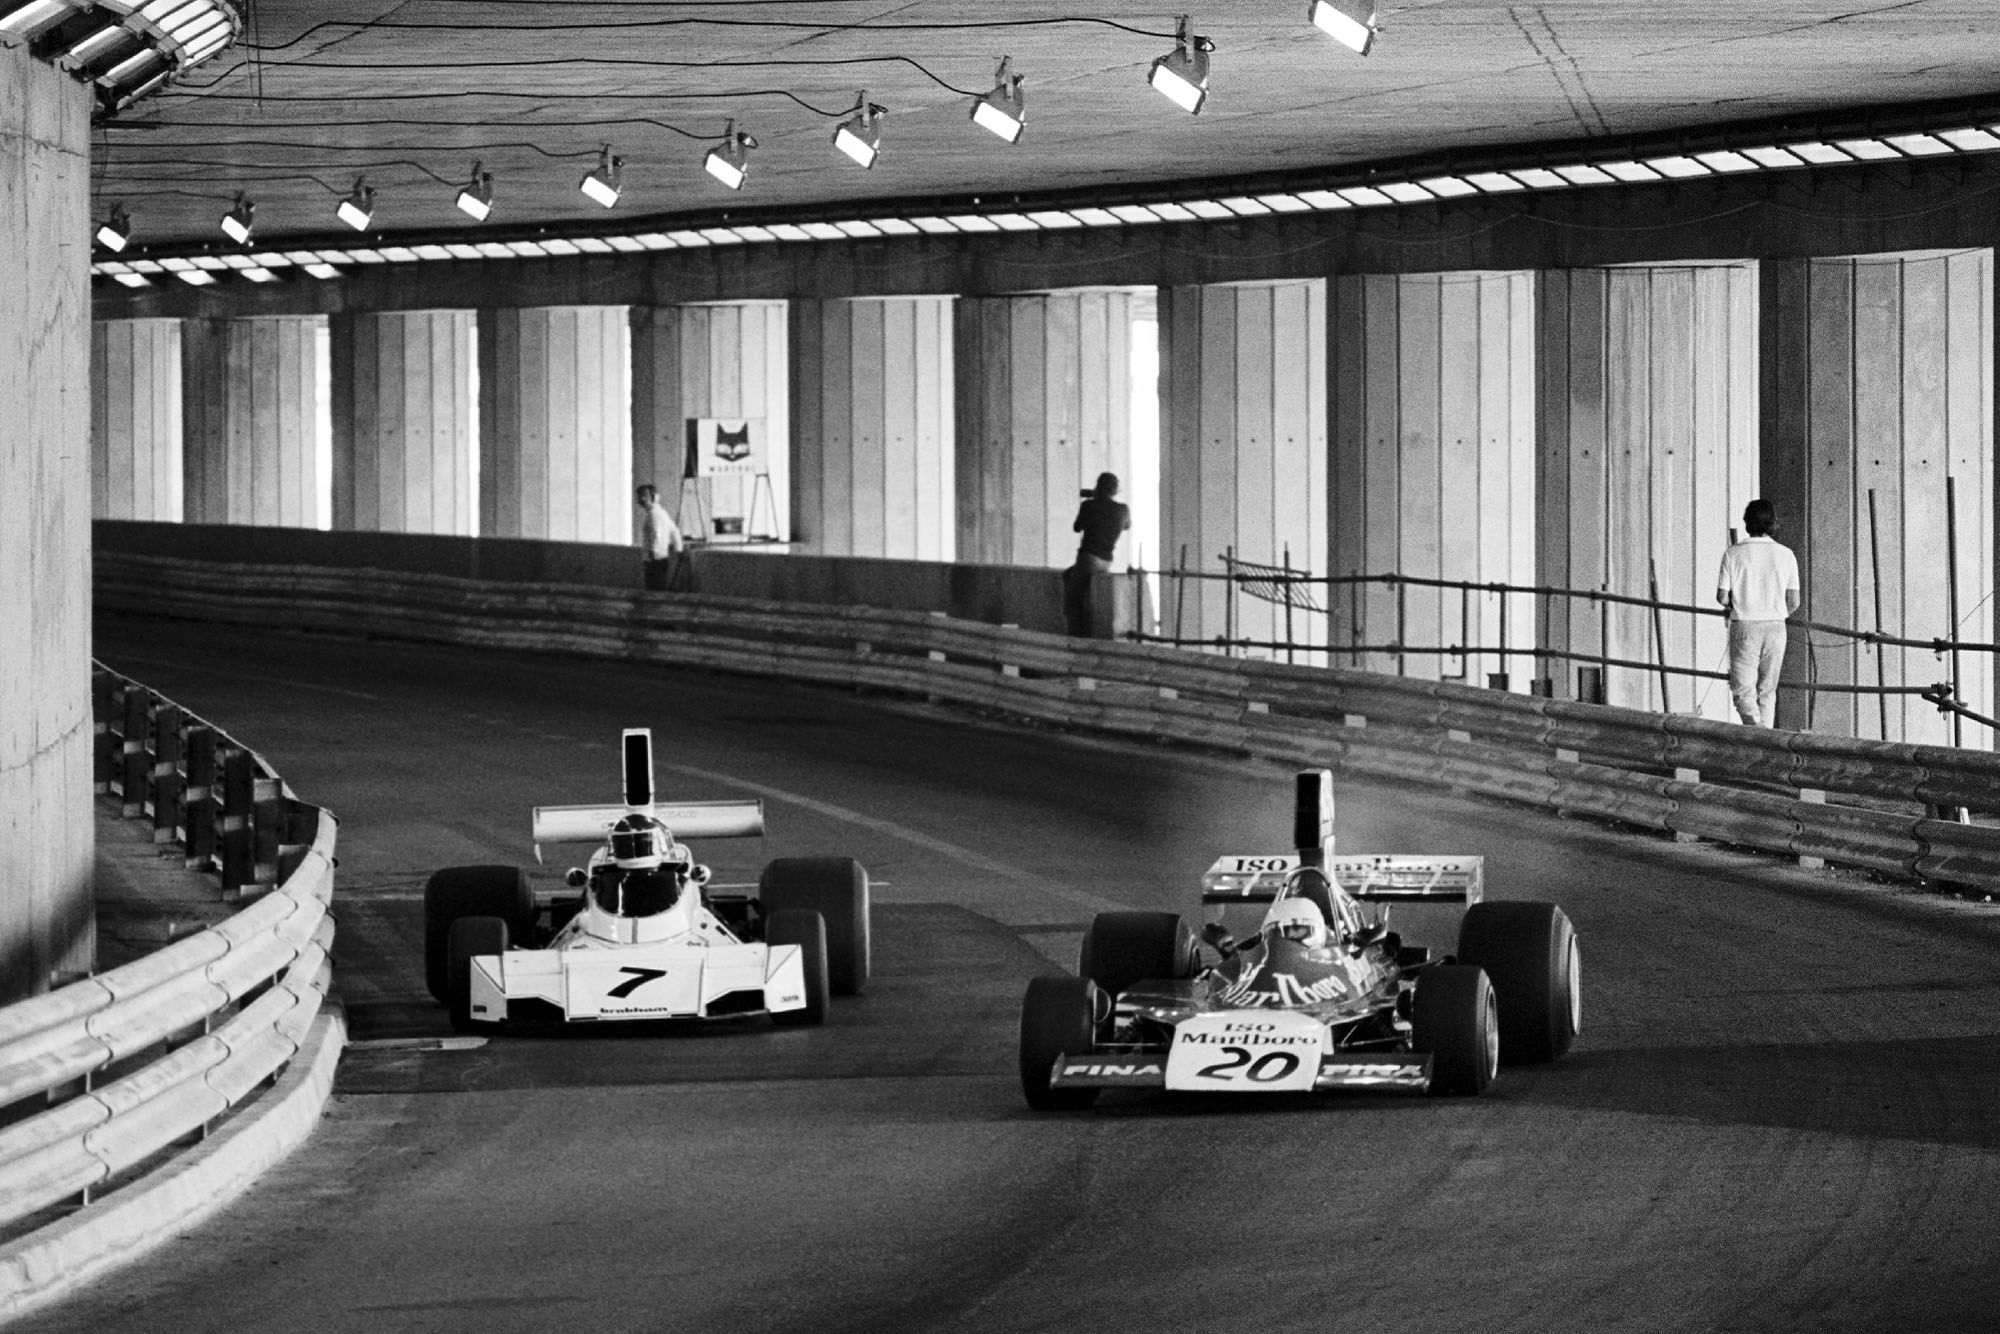 Carlos Reutemann challenges Arturo Merzario in the tunnel during the 1974 Monaco Grand Prix.